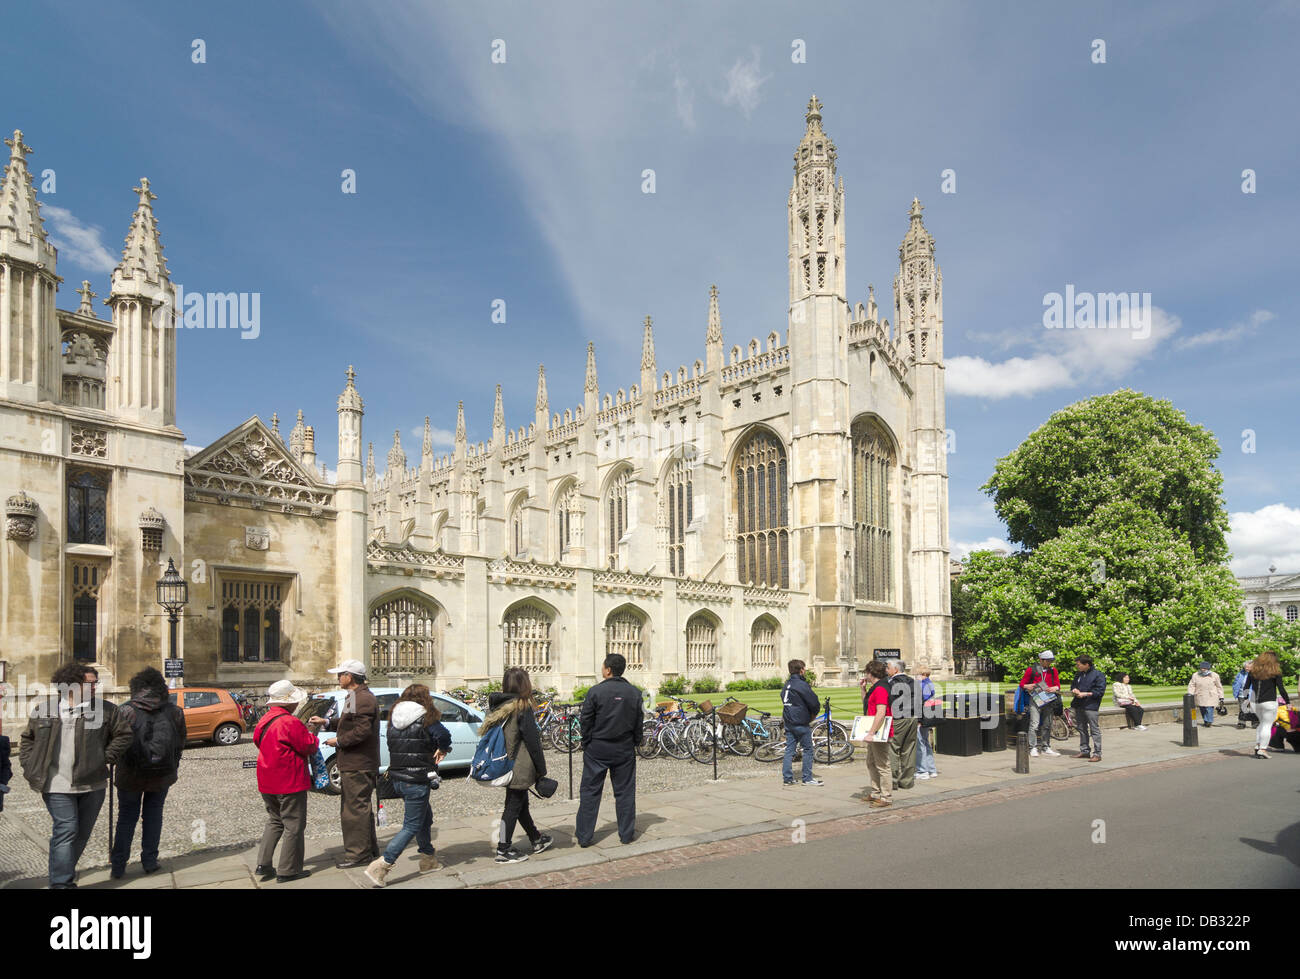 tourists, visitors and tour guides by King's College Cambridge UK - Stock Image